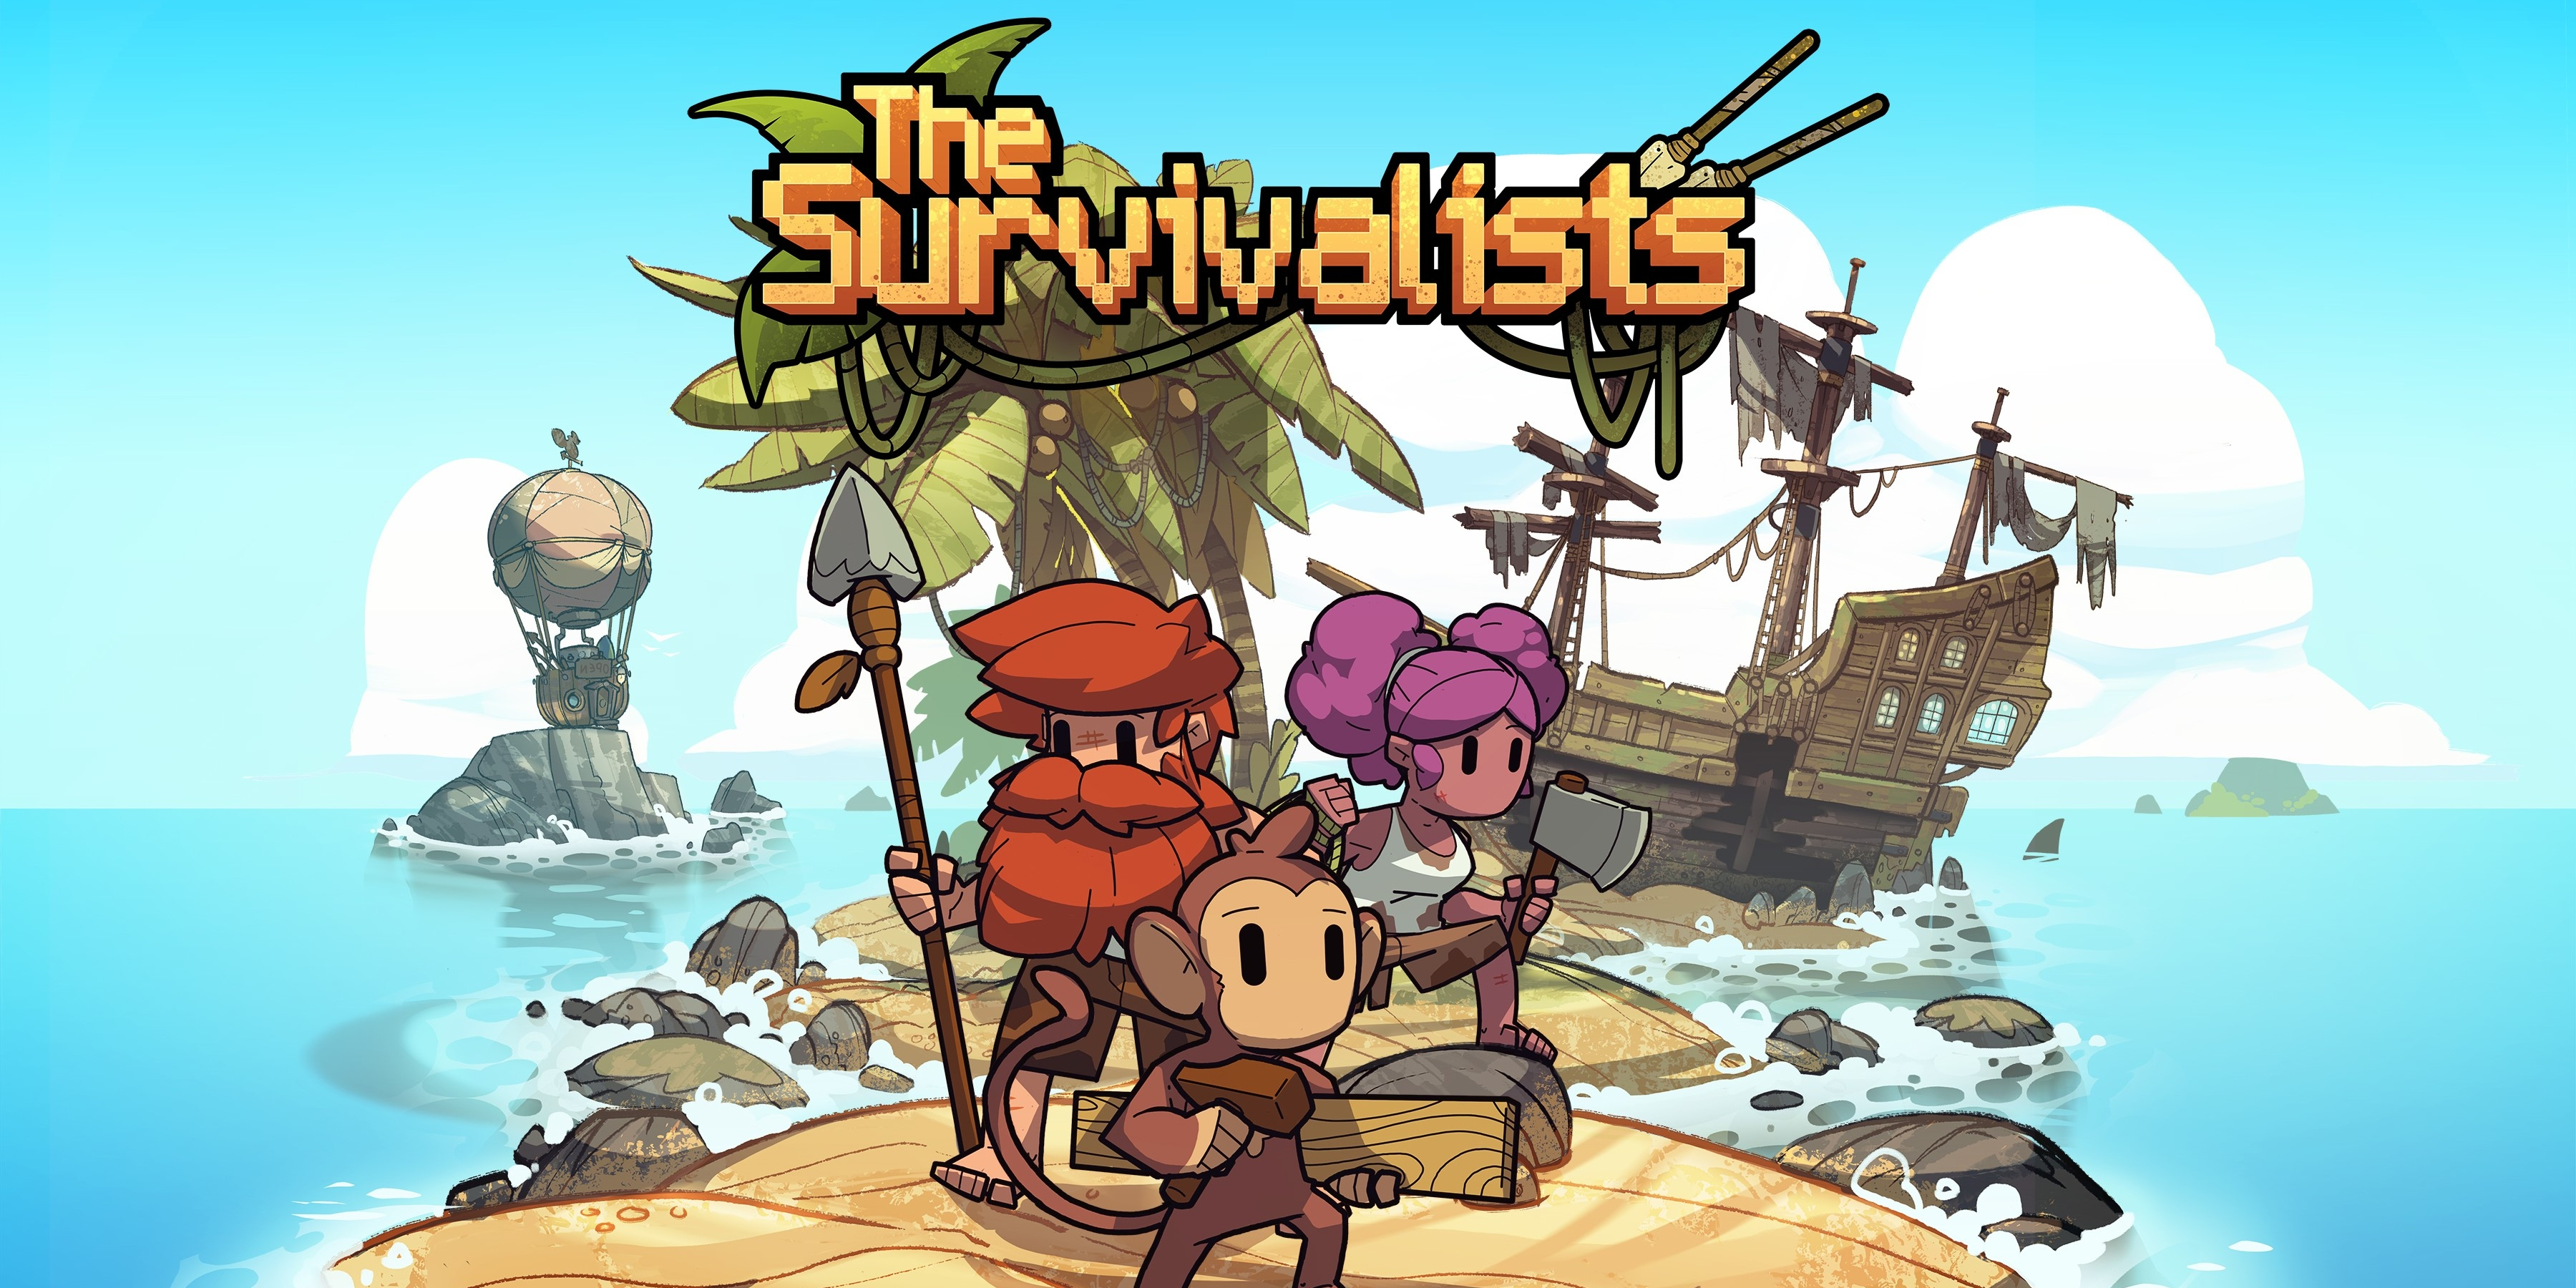 The Survivalists, Team17's upcoming co-op survival game, will also be heading for Apple Arcade later this year